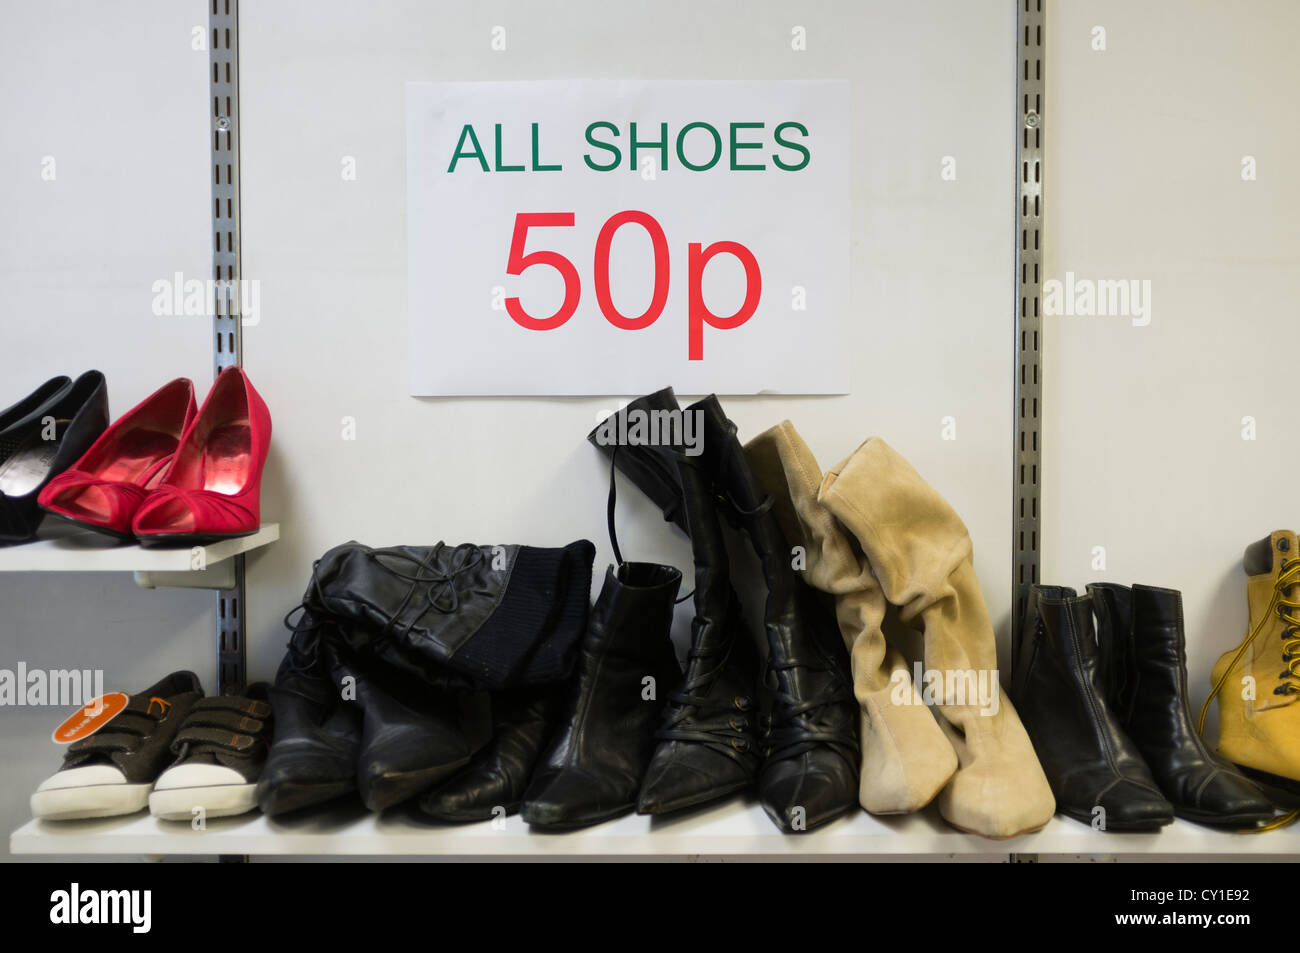 Pairs of old second hand used cheap bargain shoes on sale for 50p in a discount charity store shop uk - Stock Image